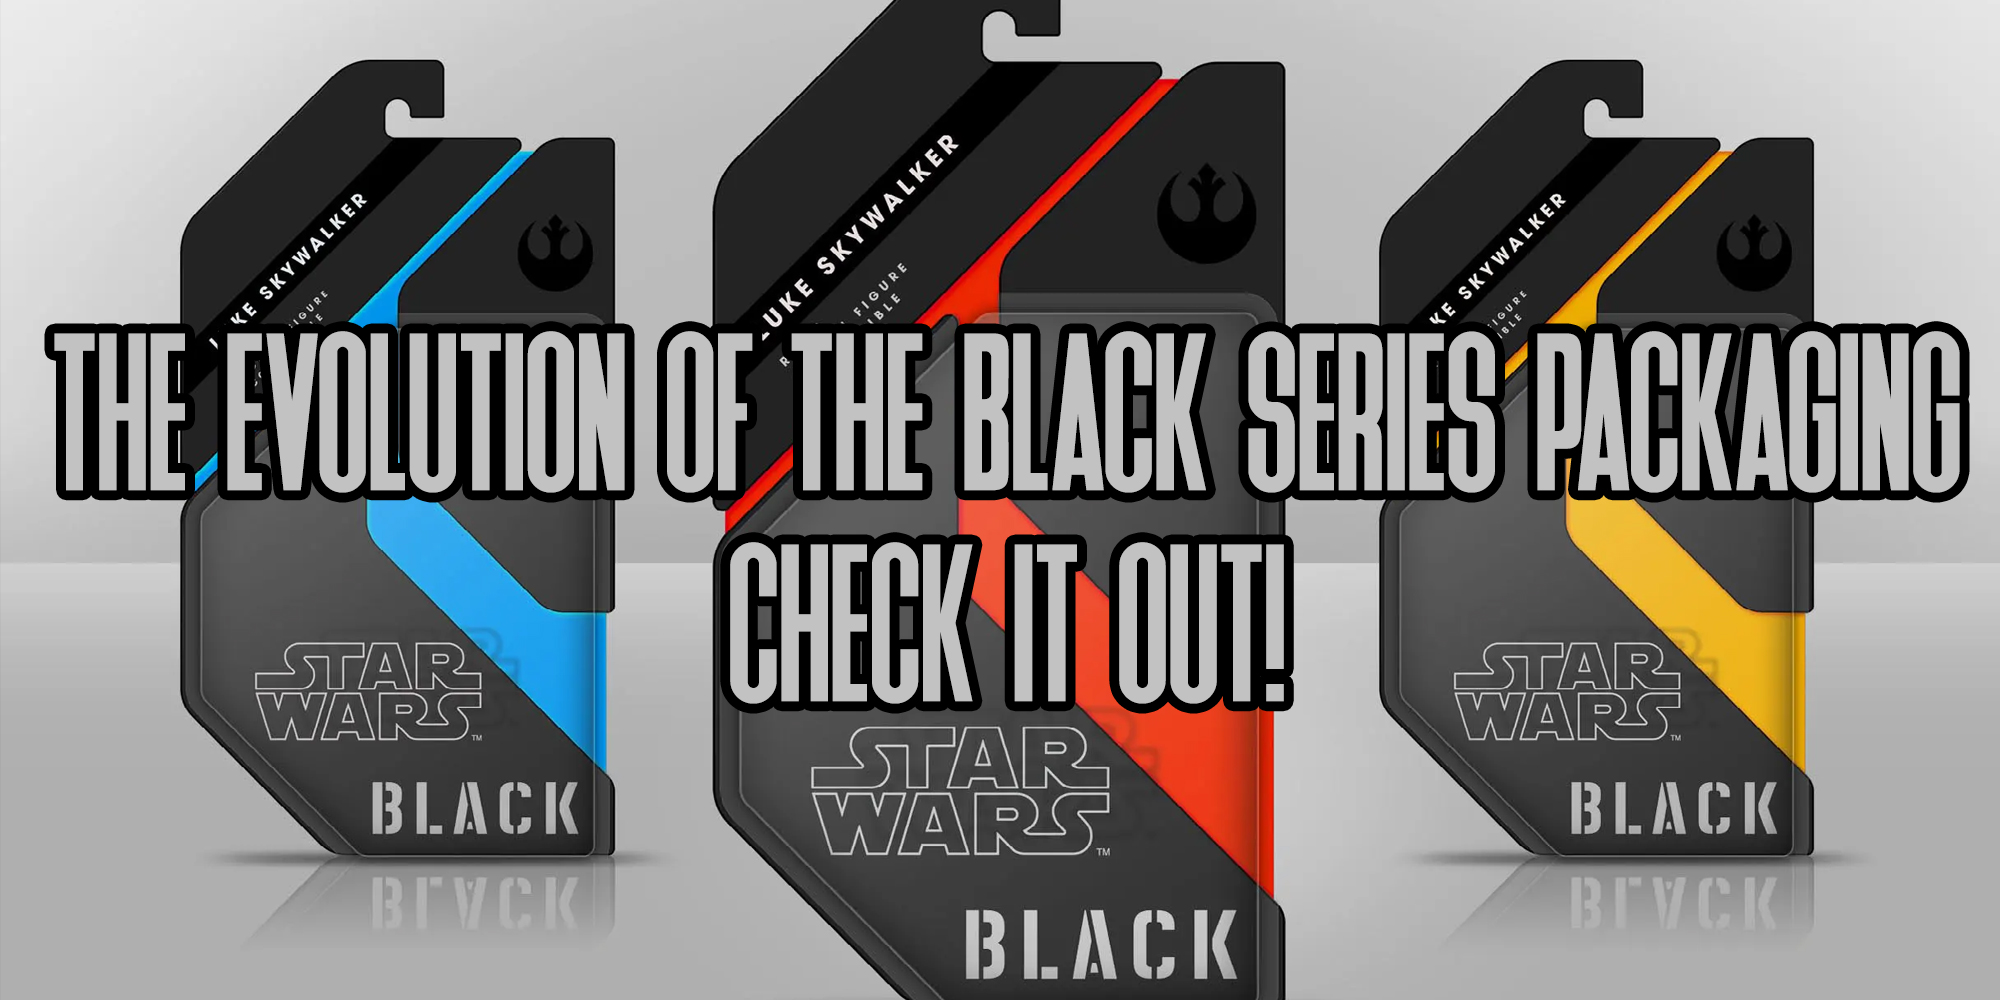 Star Wars The Black Series Packaging